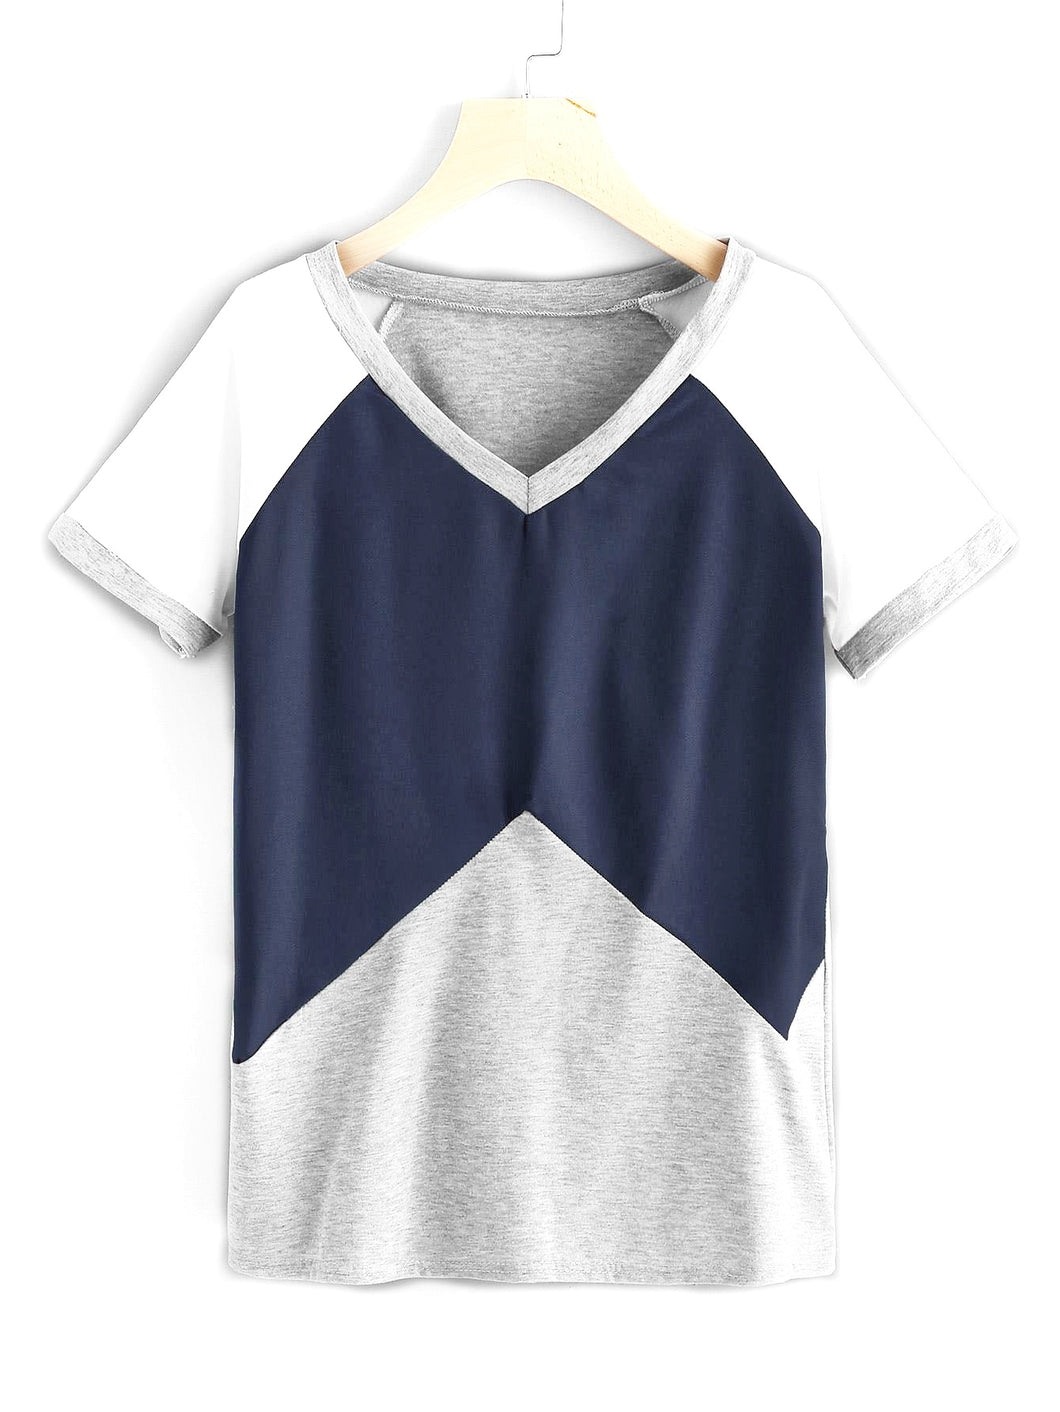 Judith Cut And Sew Contrast Raglan Sleeve Tee - Didi Royale